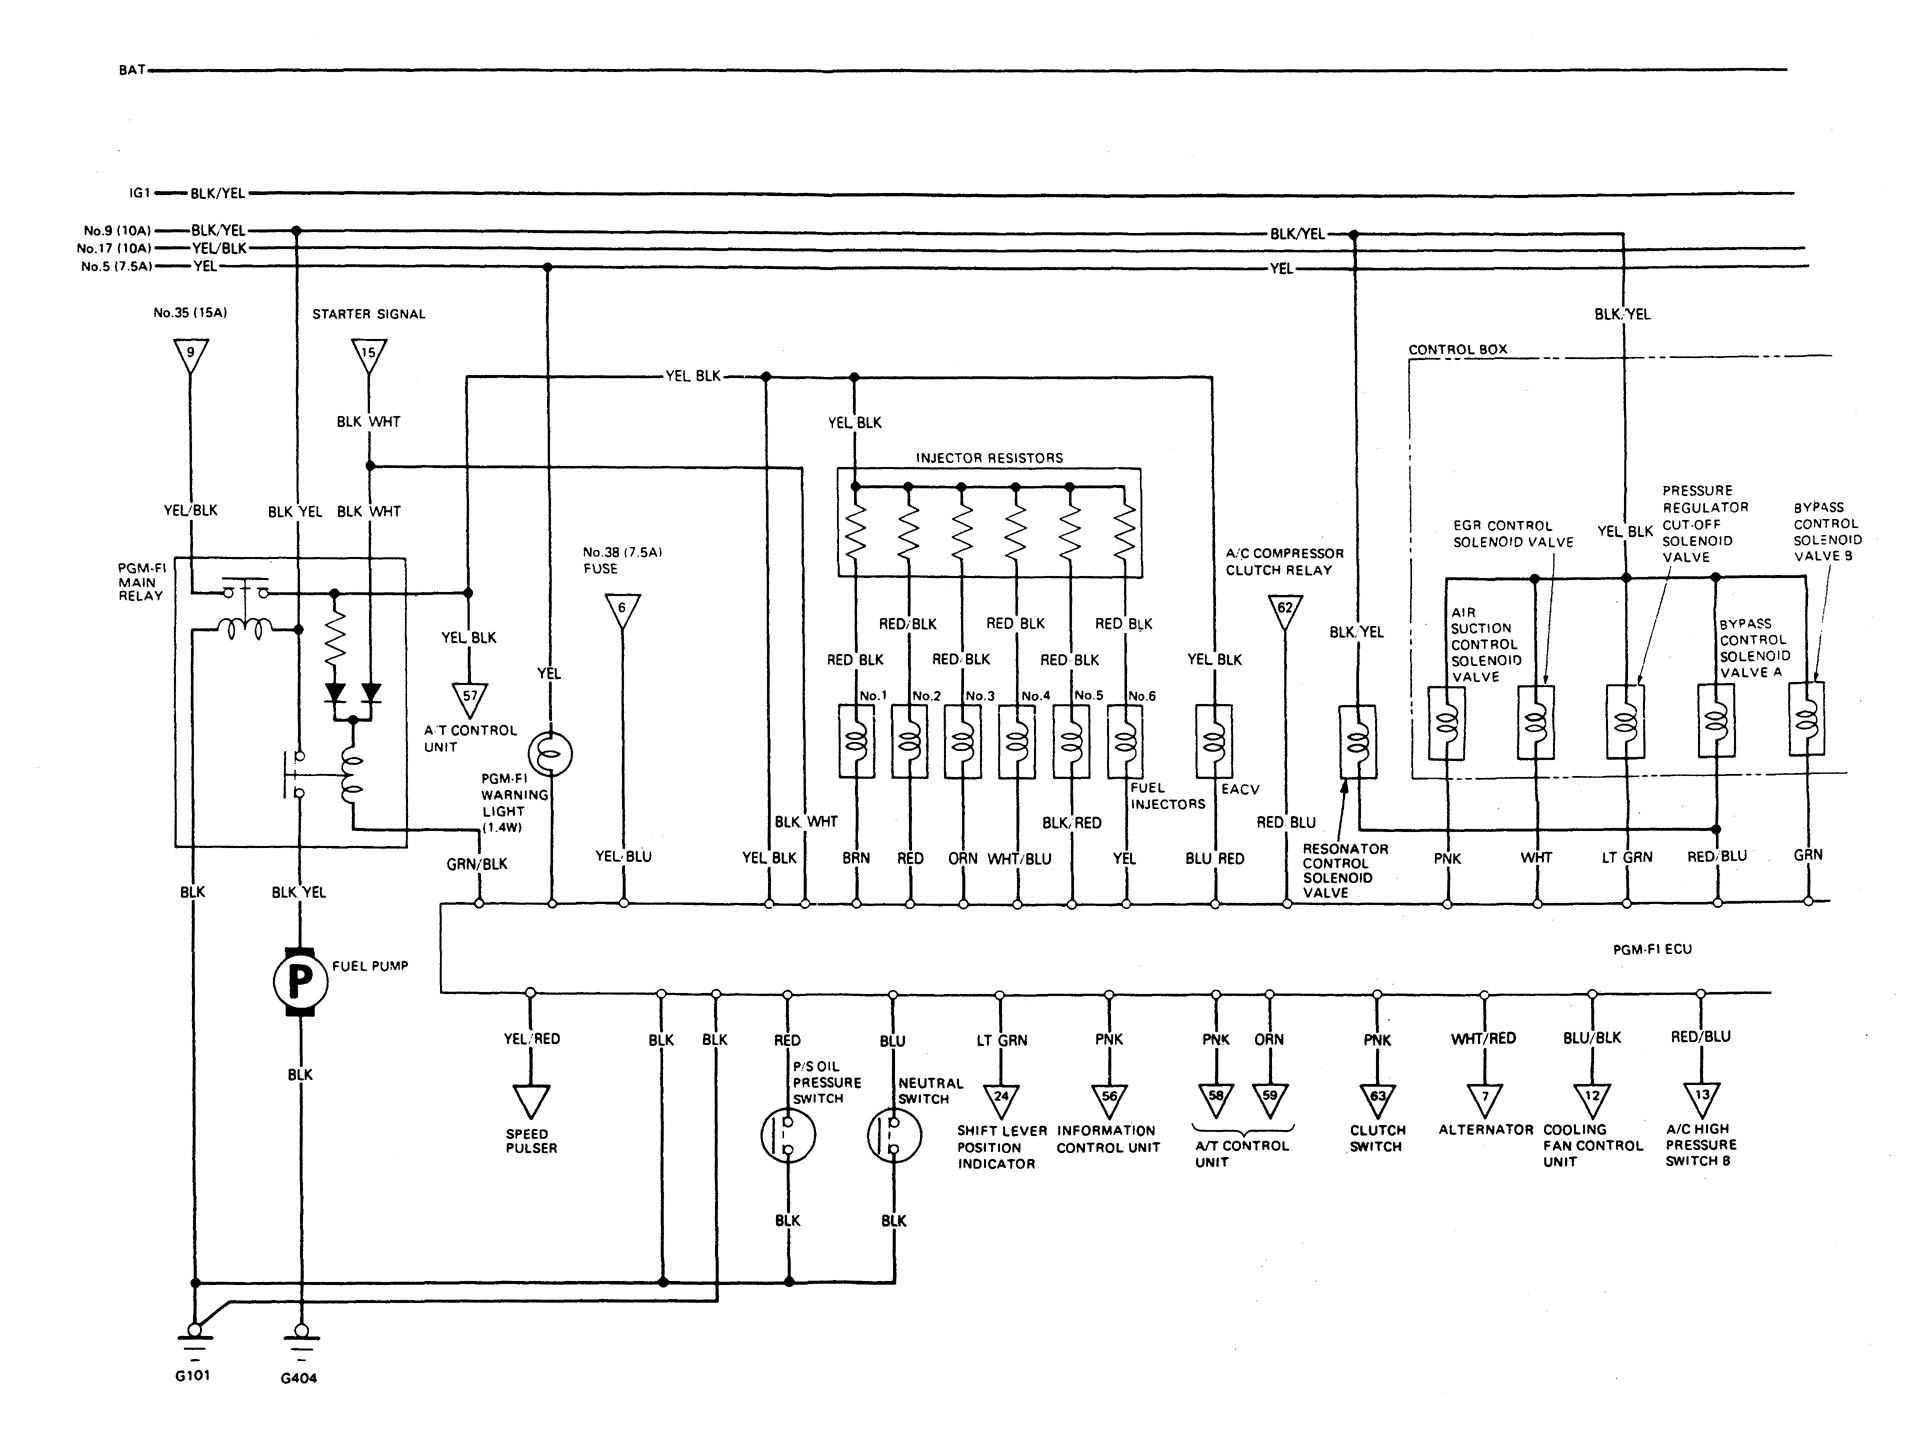 Wiring Diagram For 1991 Acura Legend. Acura Thermostat, Ford ... on